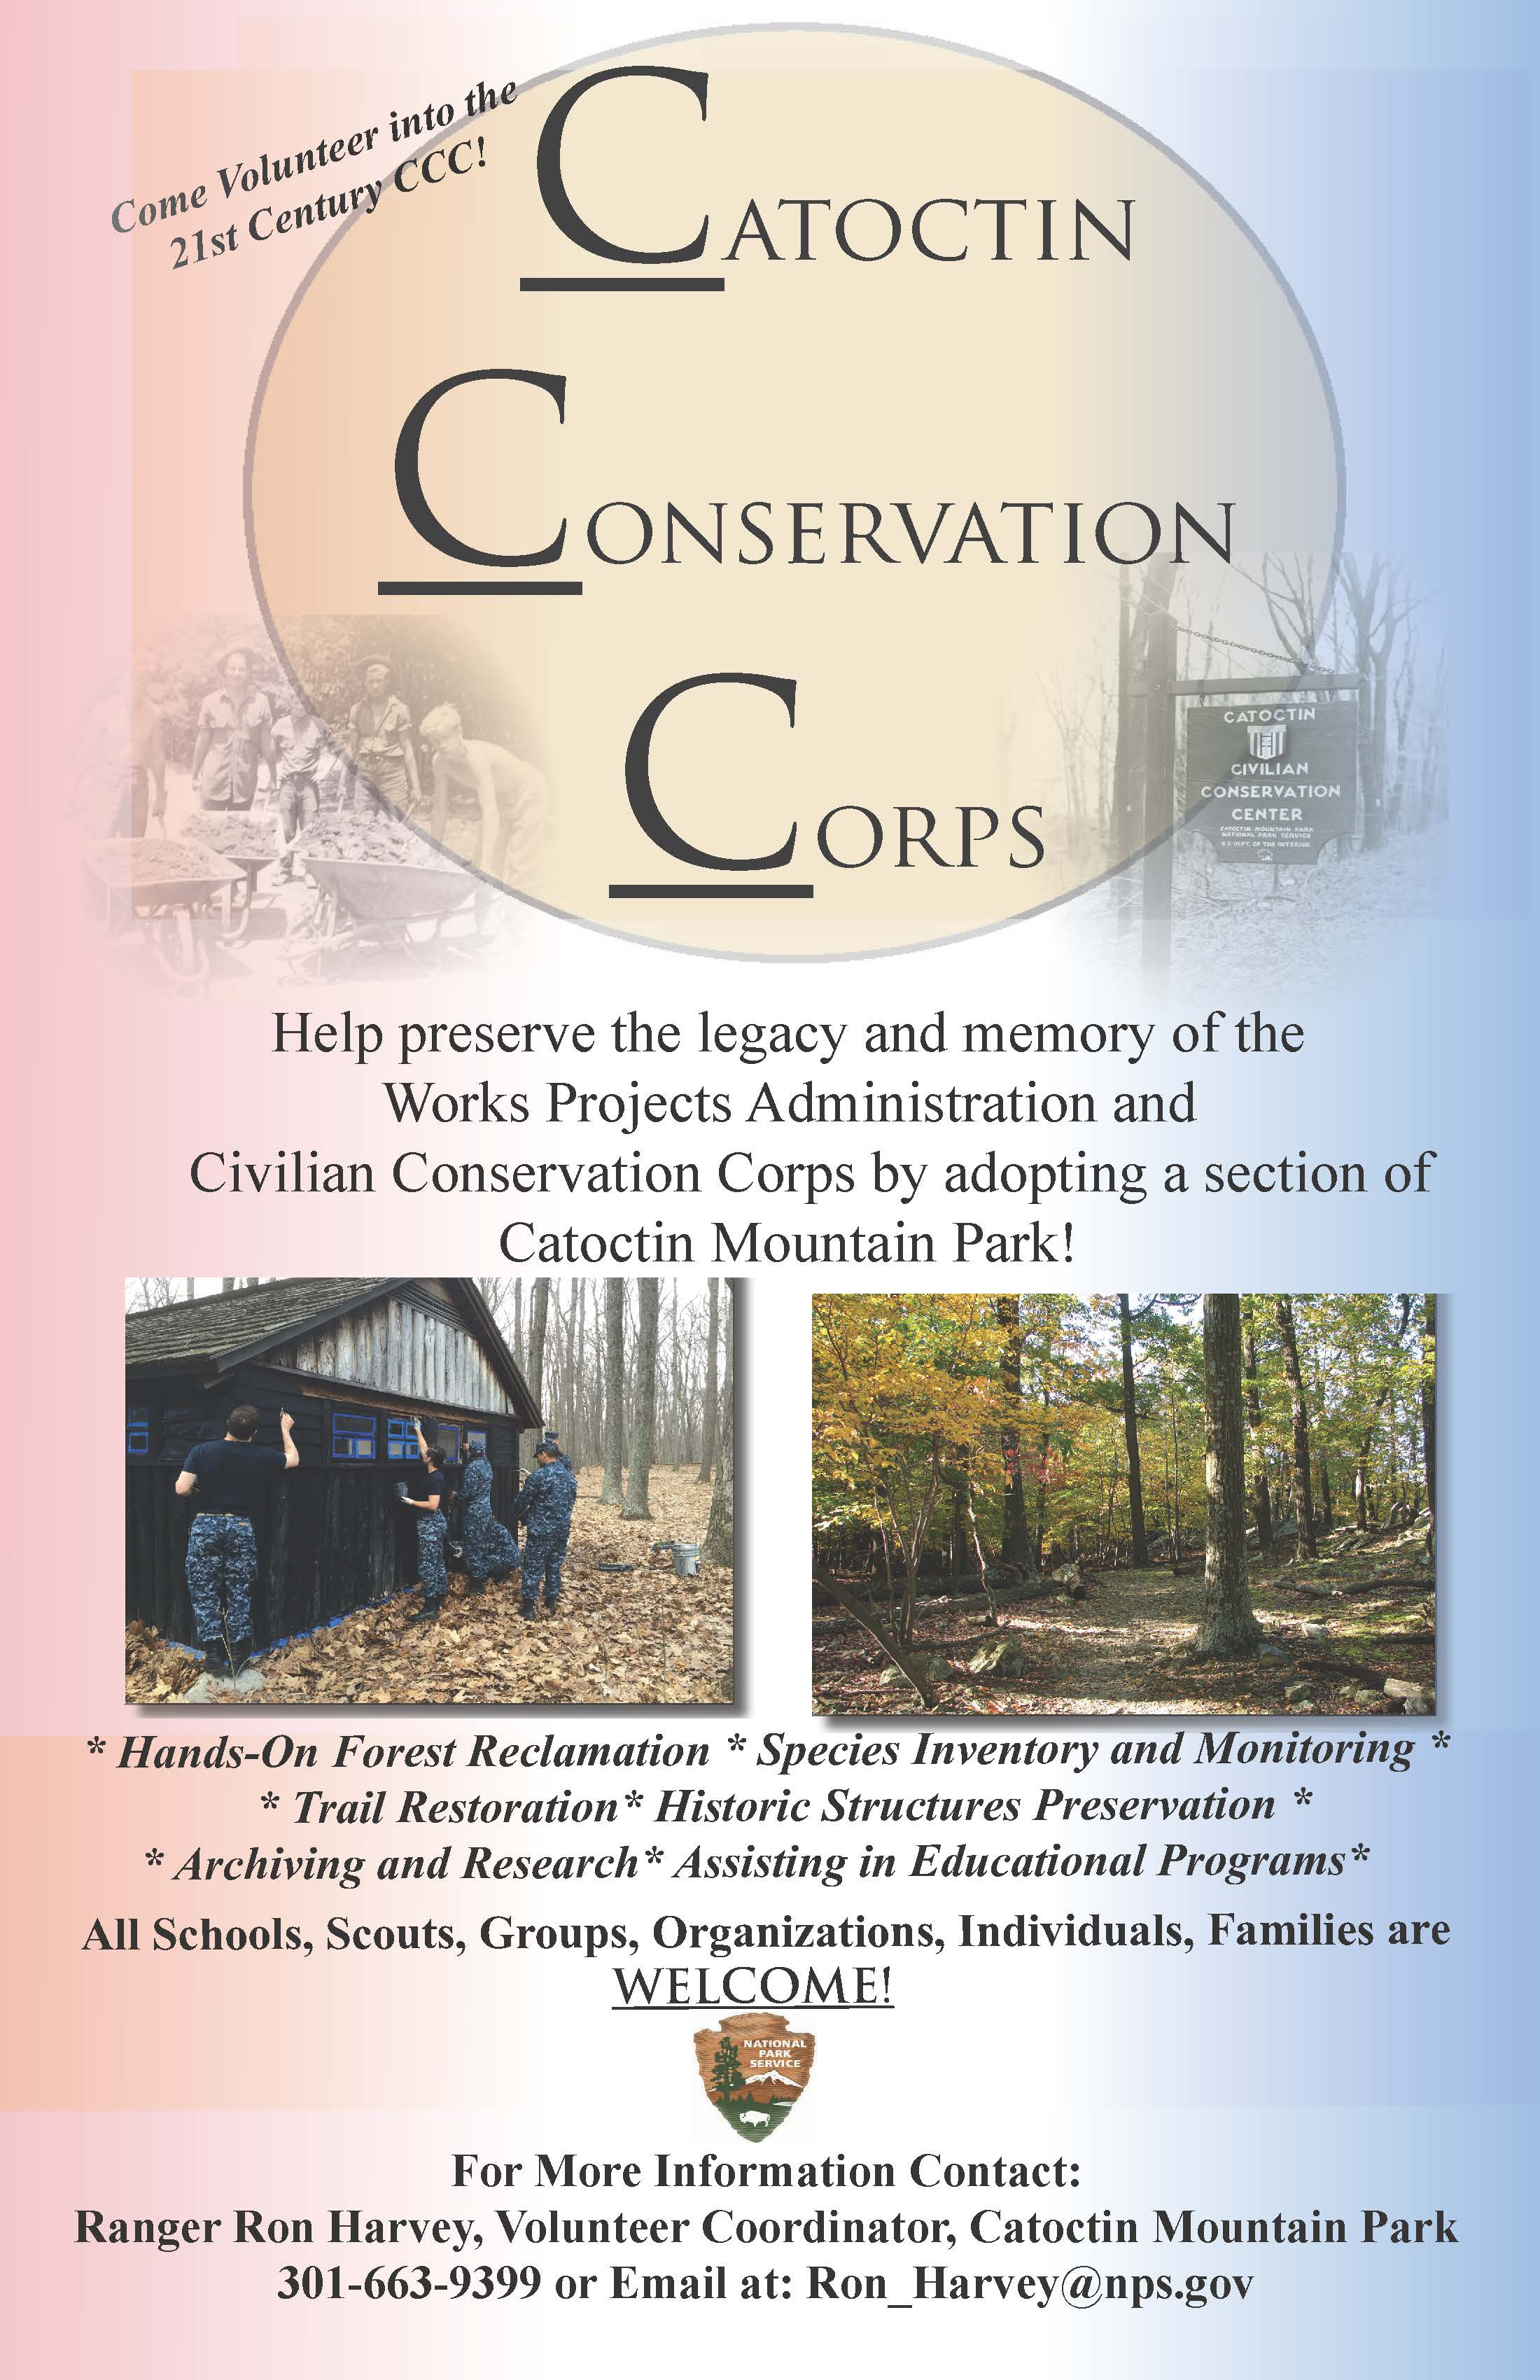 Image of Catoctin Conservation Corps Volunteer Poster